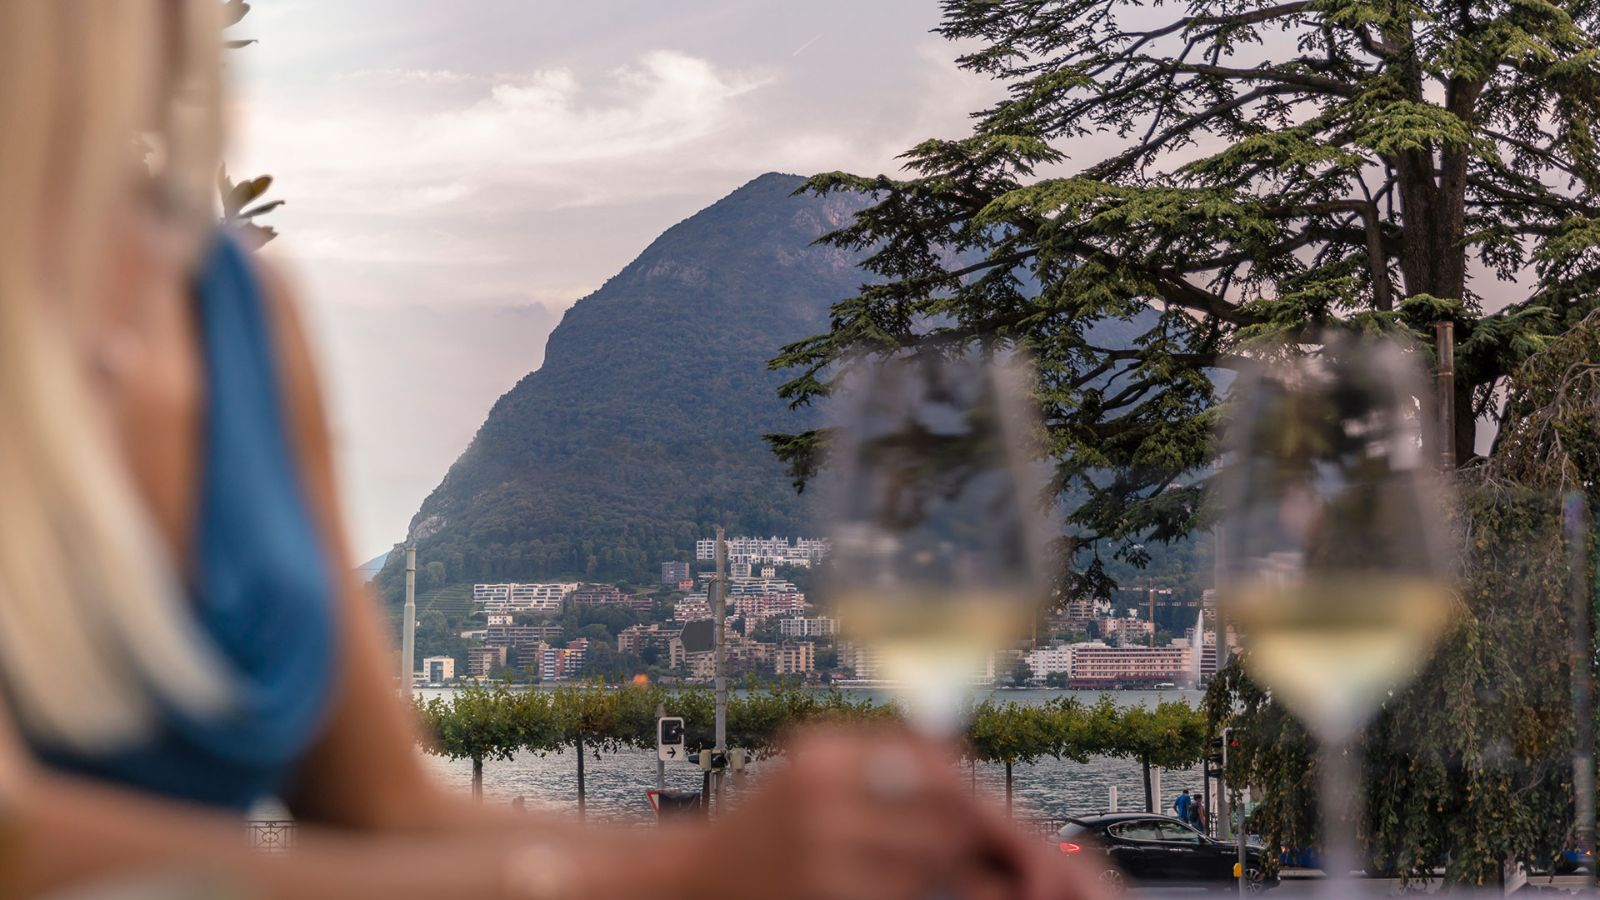 Aperitif with a view of Monte San Salvatore